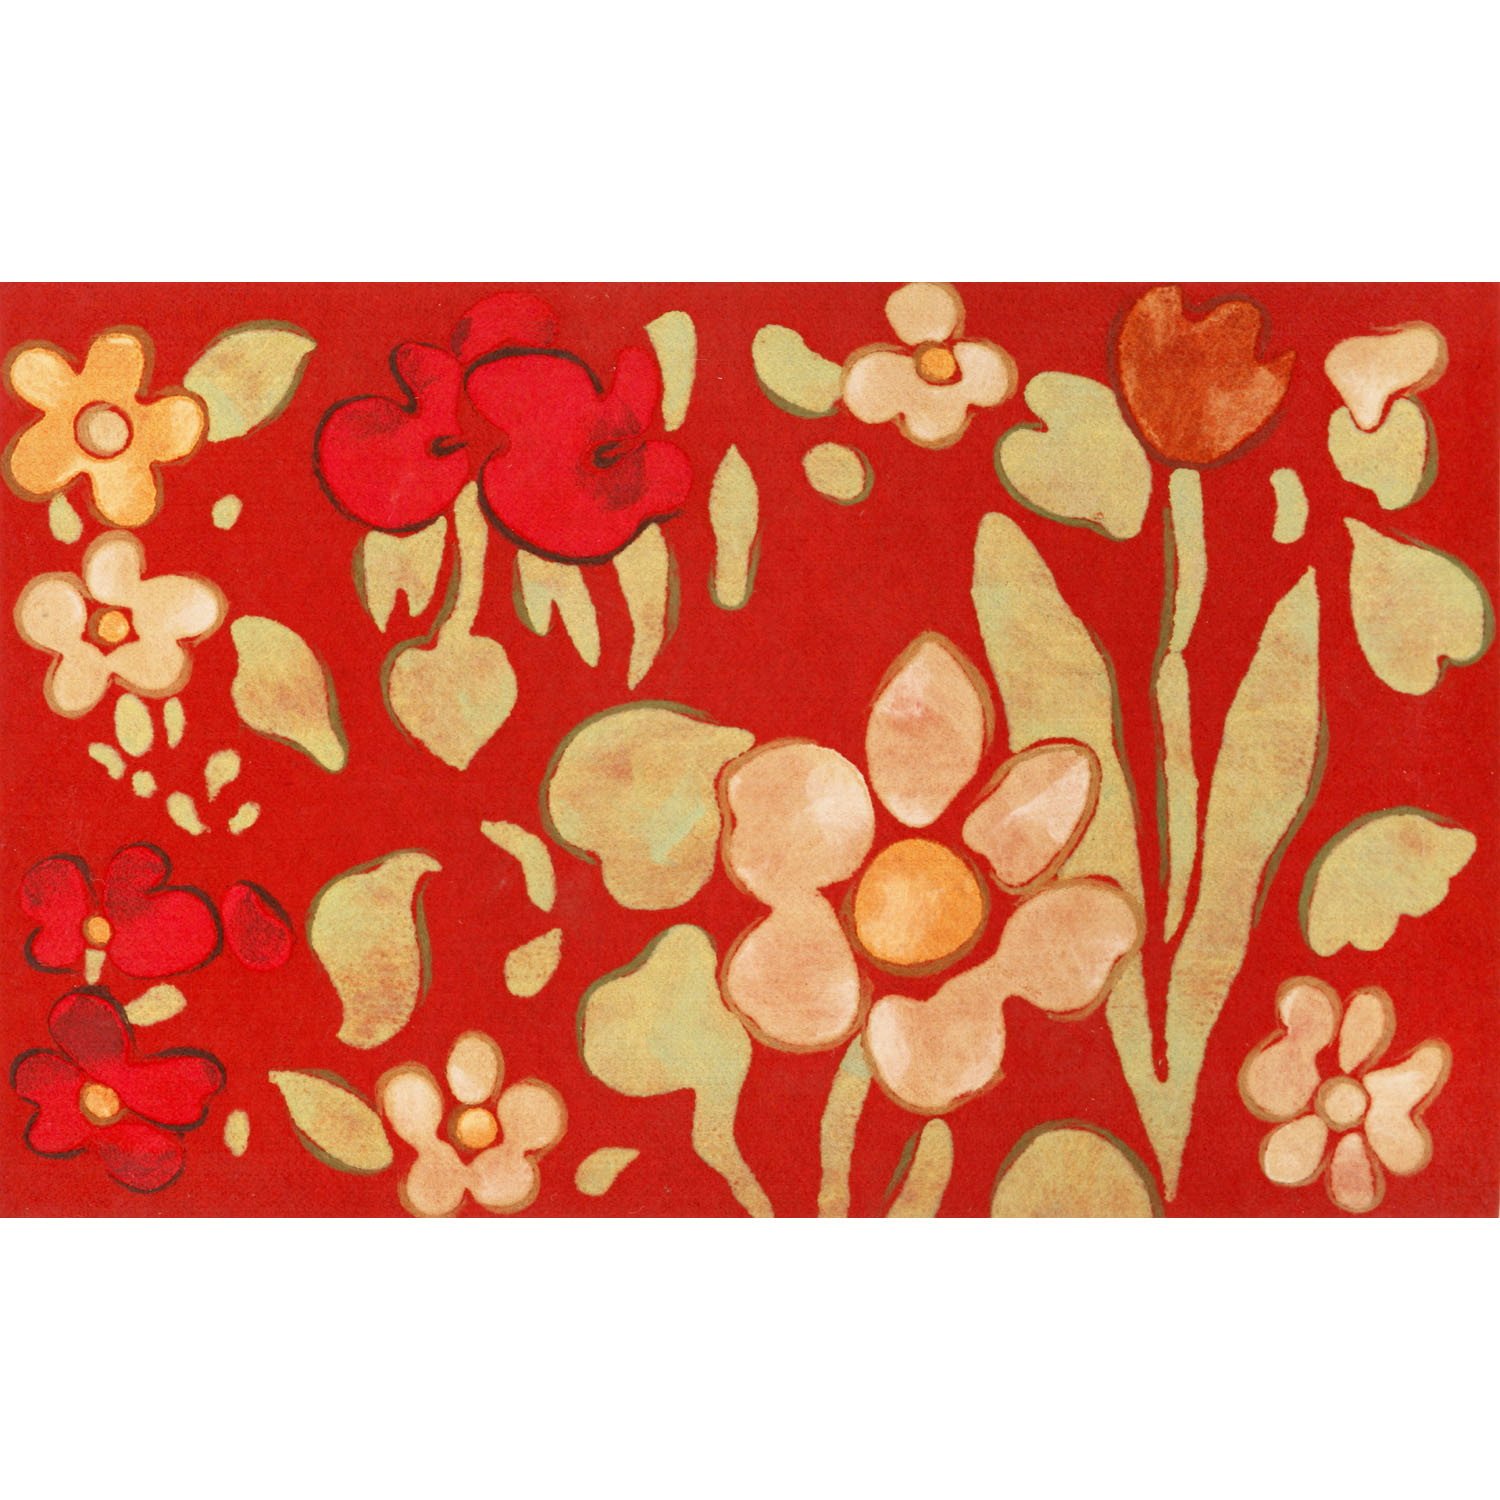 Liora Manne Visions IV Watercolor Flower Doormat by Supplier Generic